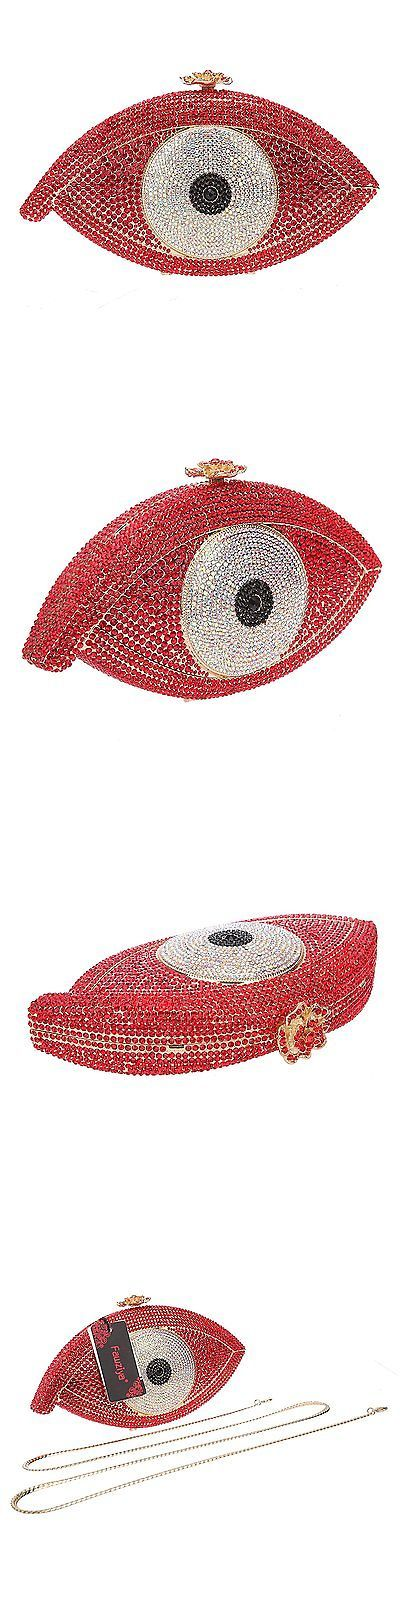 Bridal Handbags And Bags: Fawziya Eye Shape Crystal Wedding Purses And Handbags Evening Bag-Red -> BUY IT NOW ONLY: $126.39 on eBay!